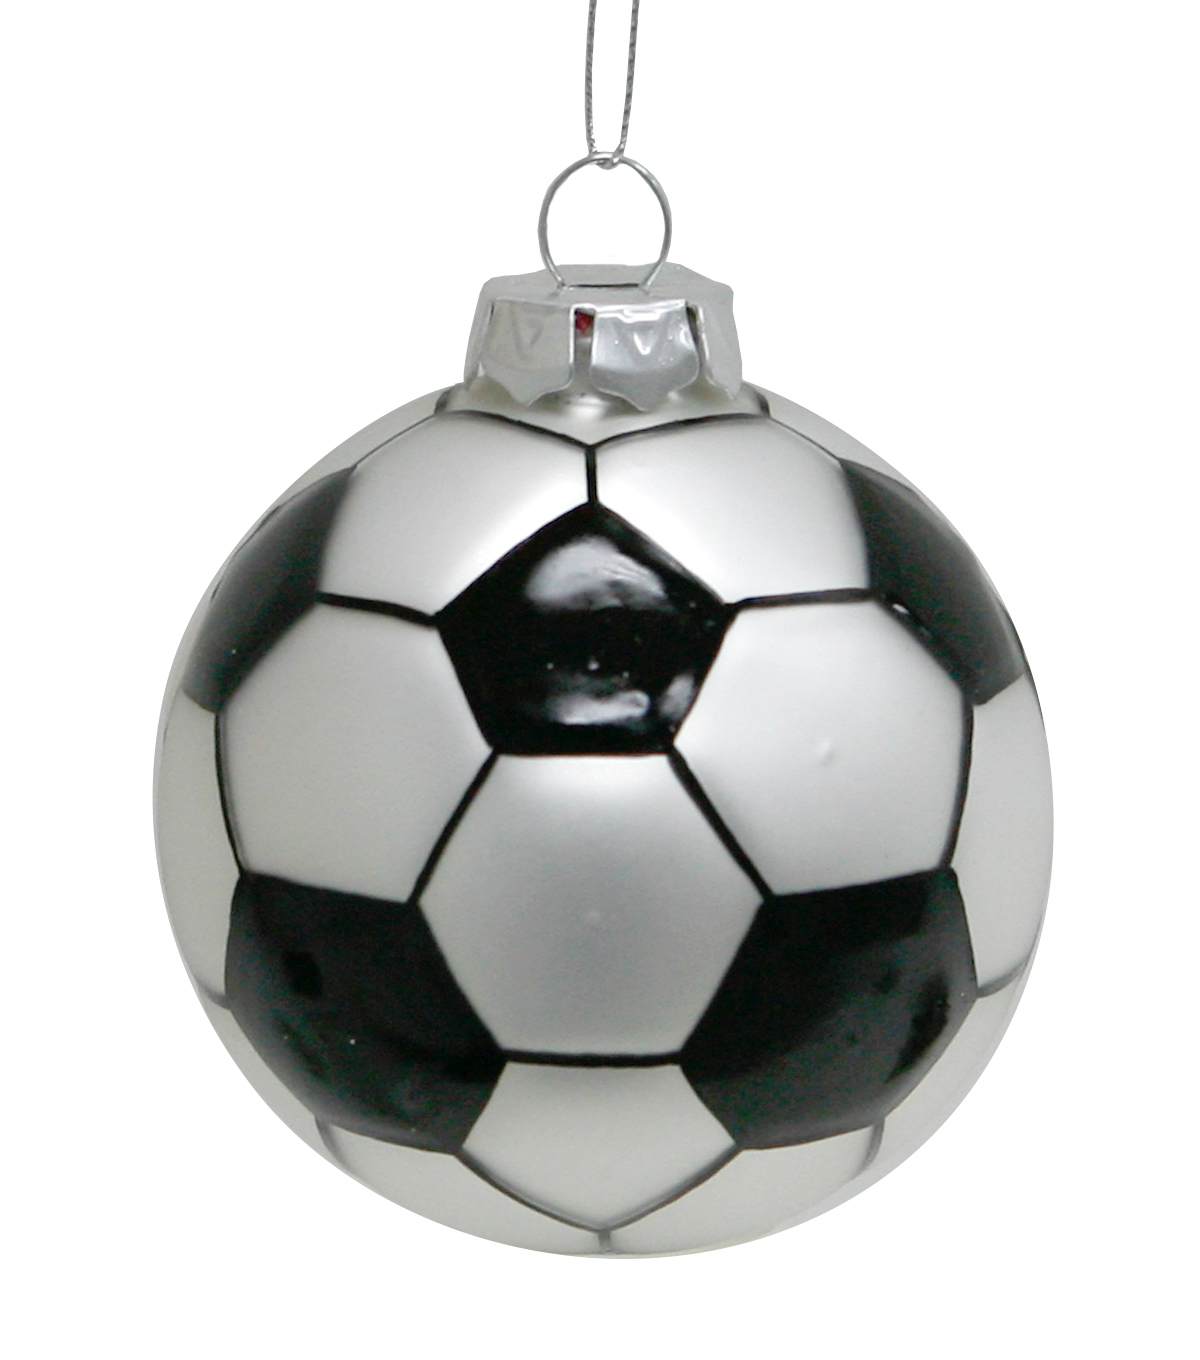 Maker\u0027s Holiday Soccer Ornament